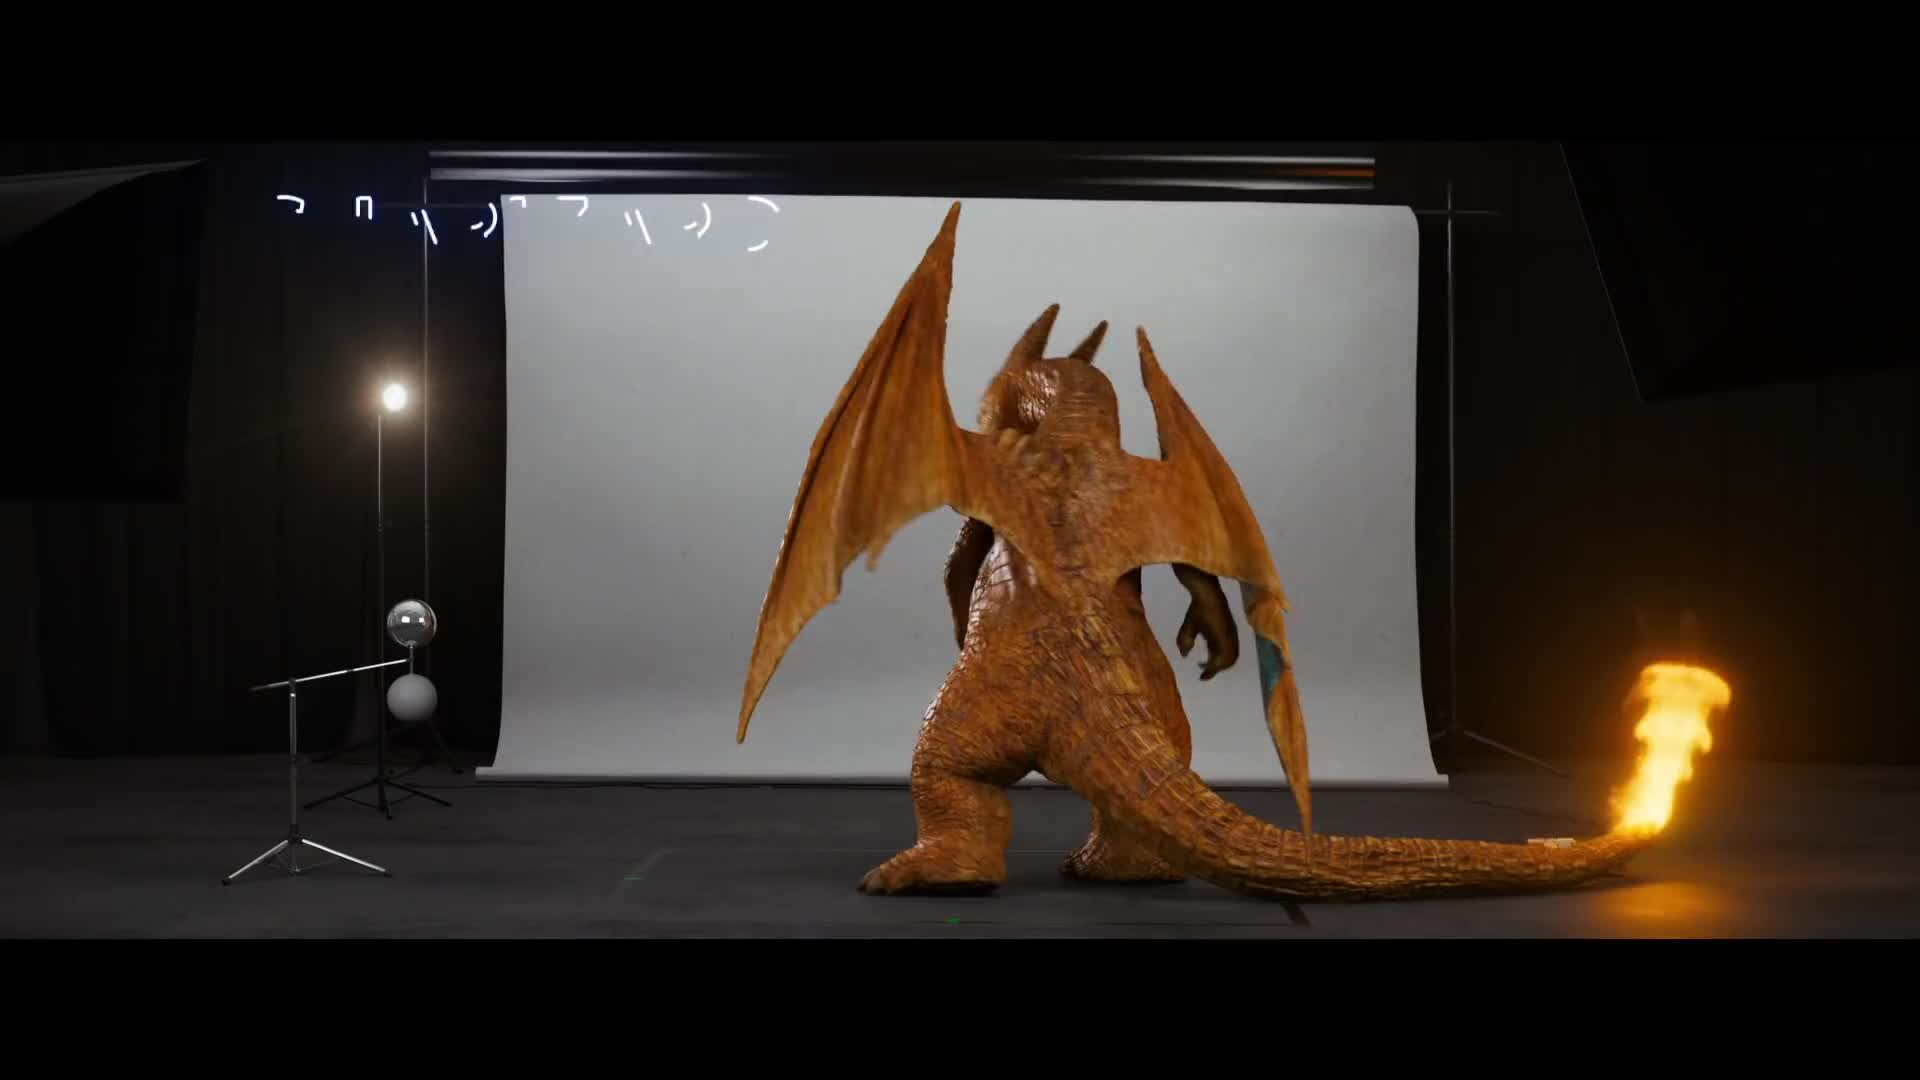 pokemon detective pikachu movie charizard